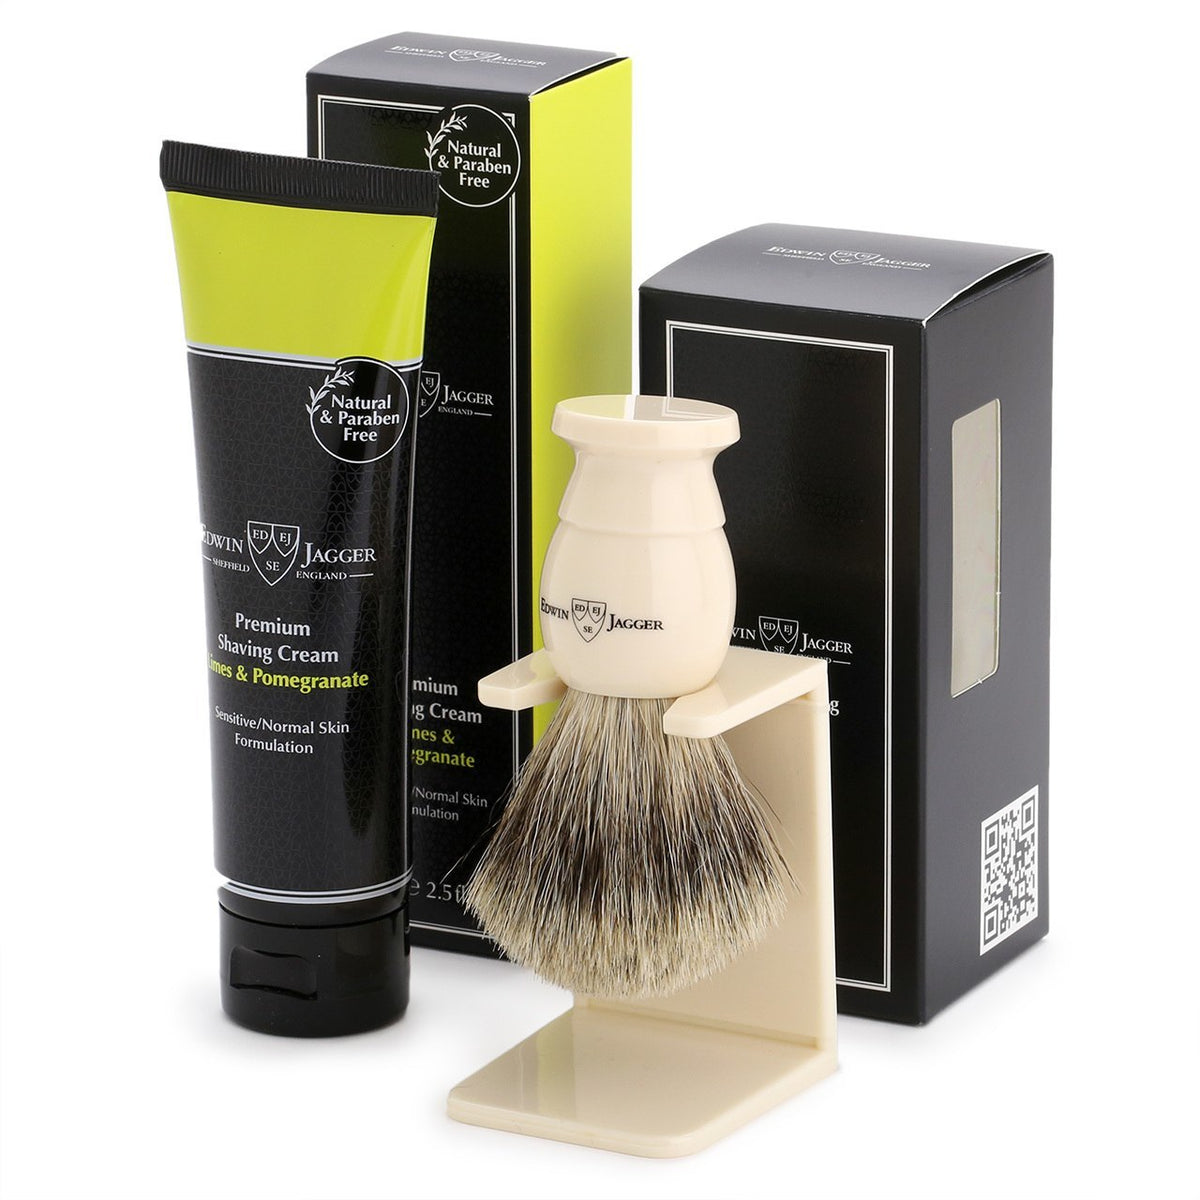 Edwin Jagger Imitation Ivory Shaving Brush and Lime & Pomegranate Shave Cream Gift Set